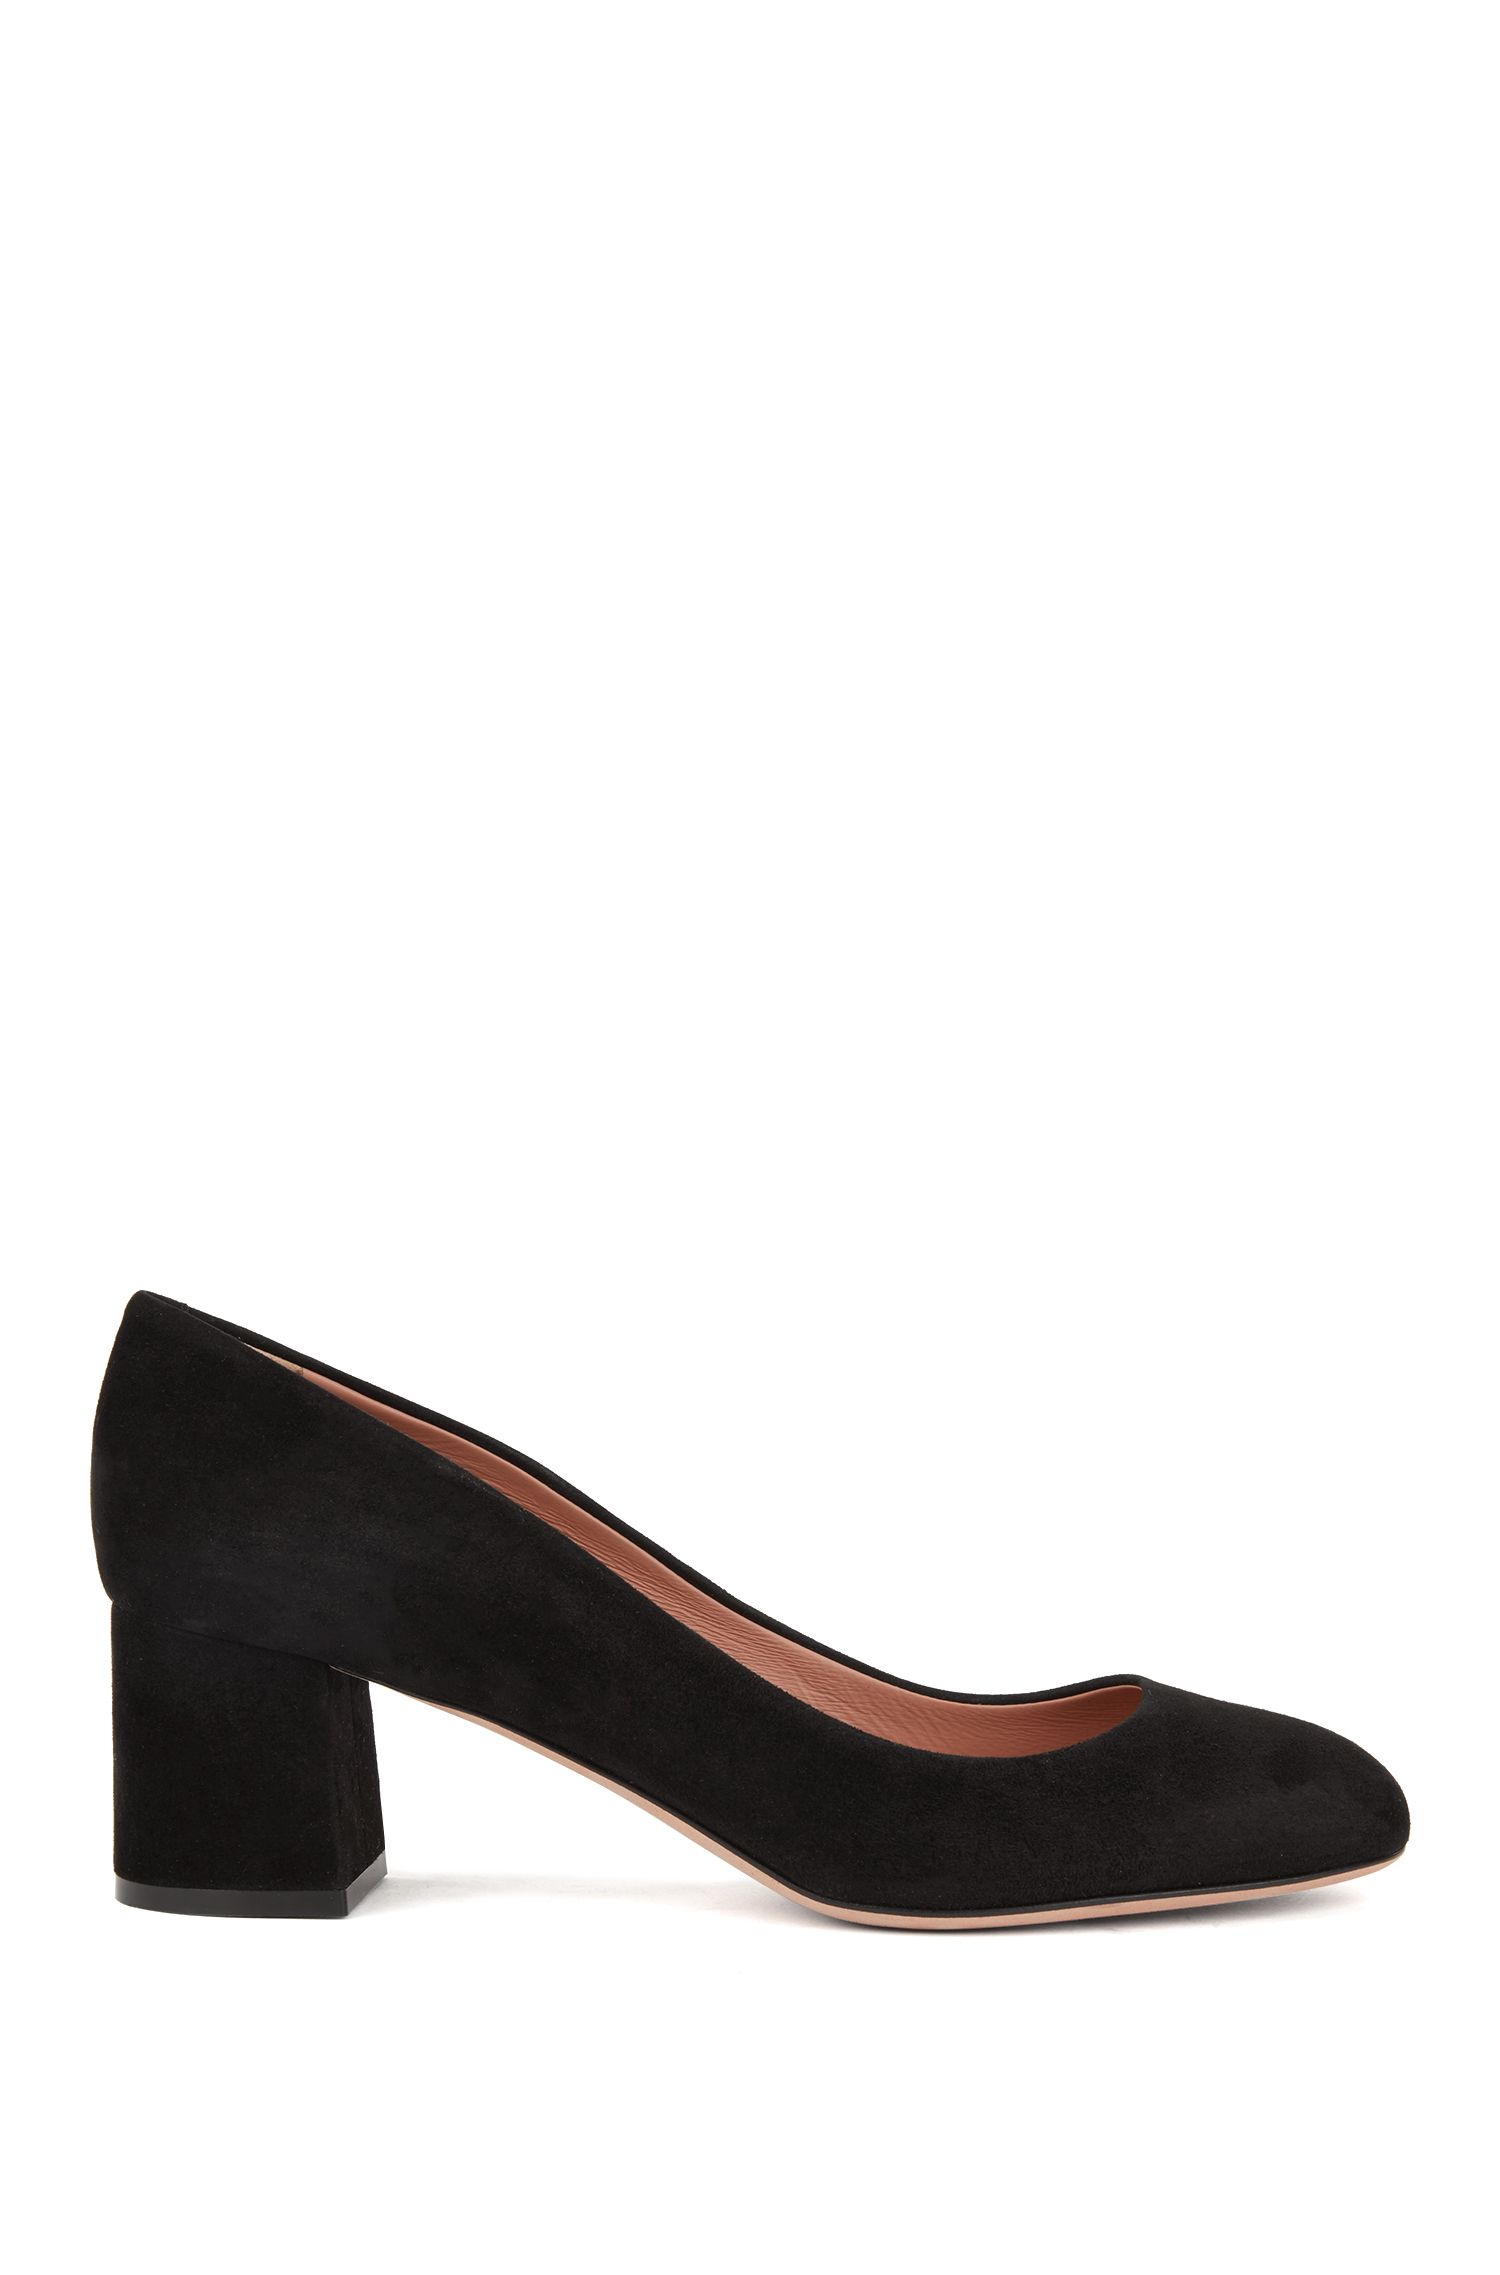 Stacked-heel pumps in Italian suede, Black